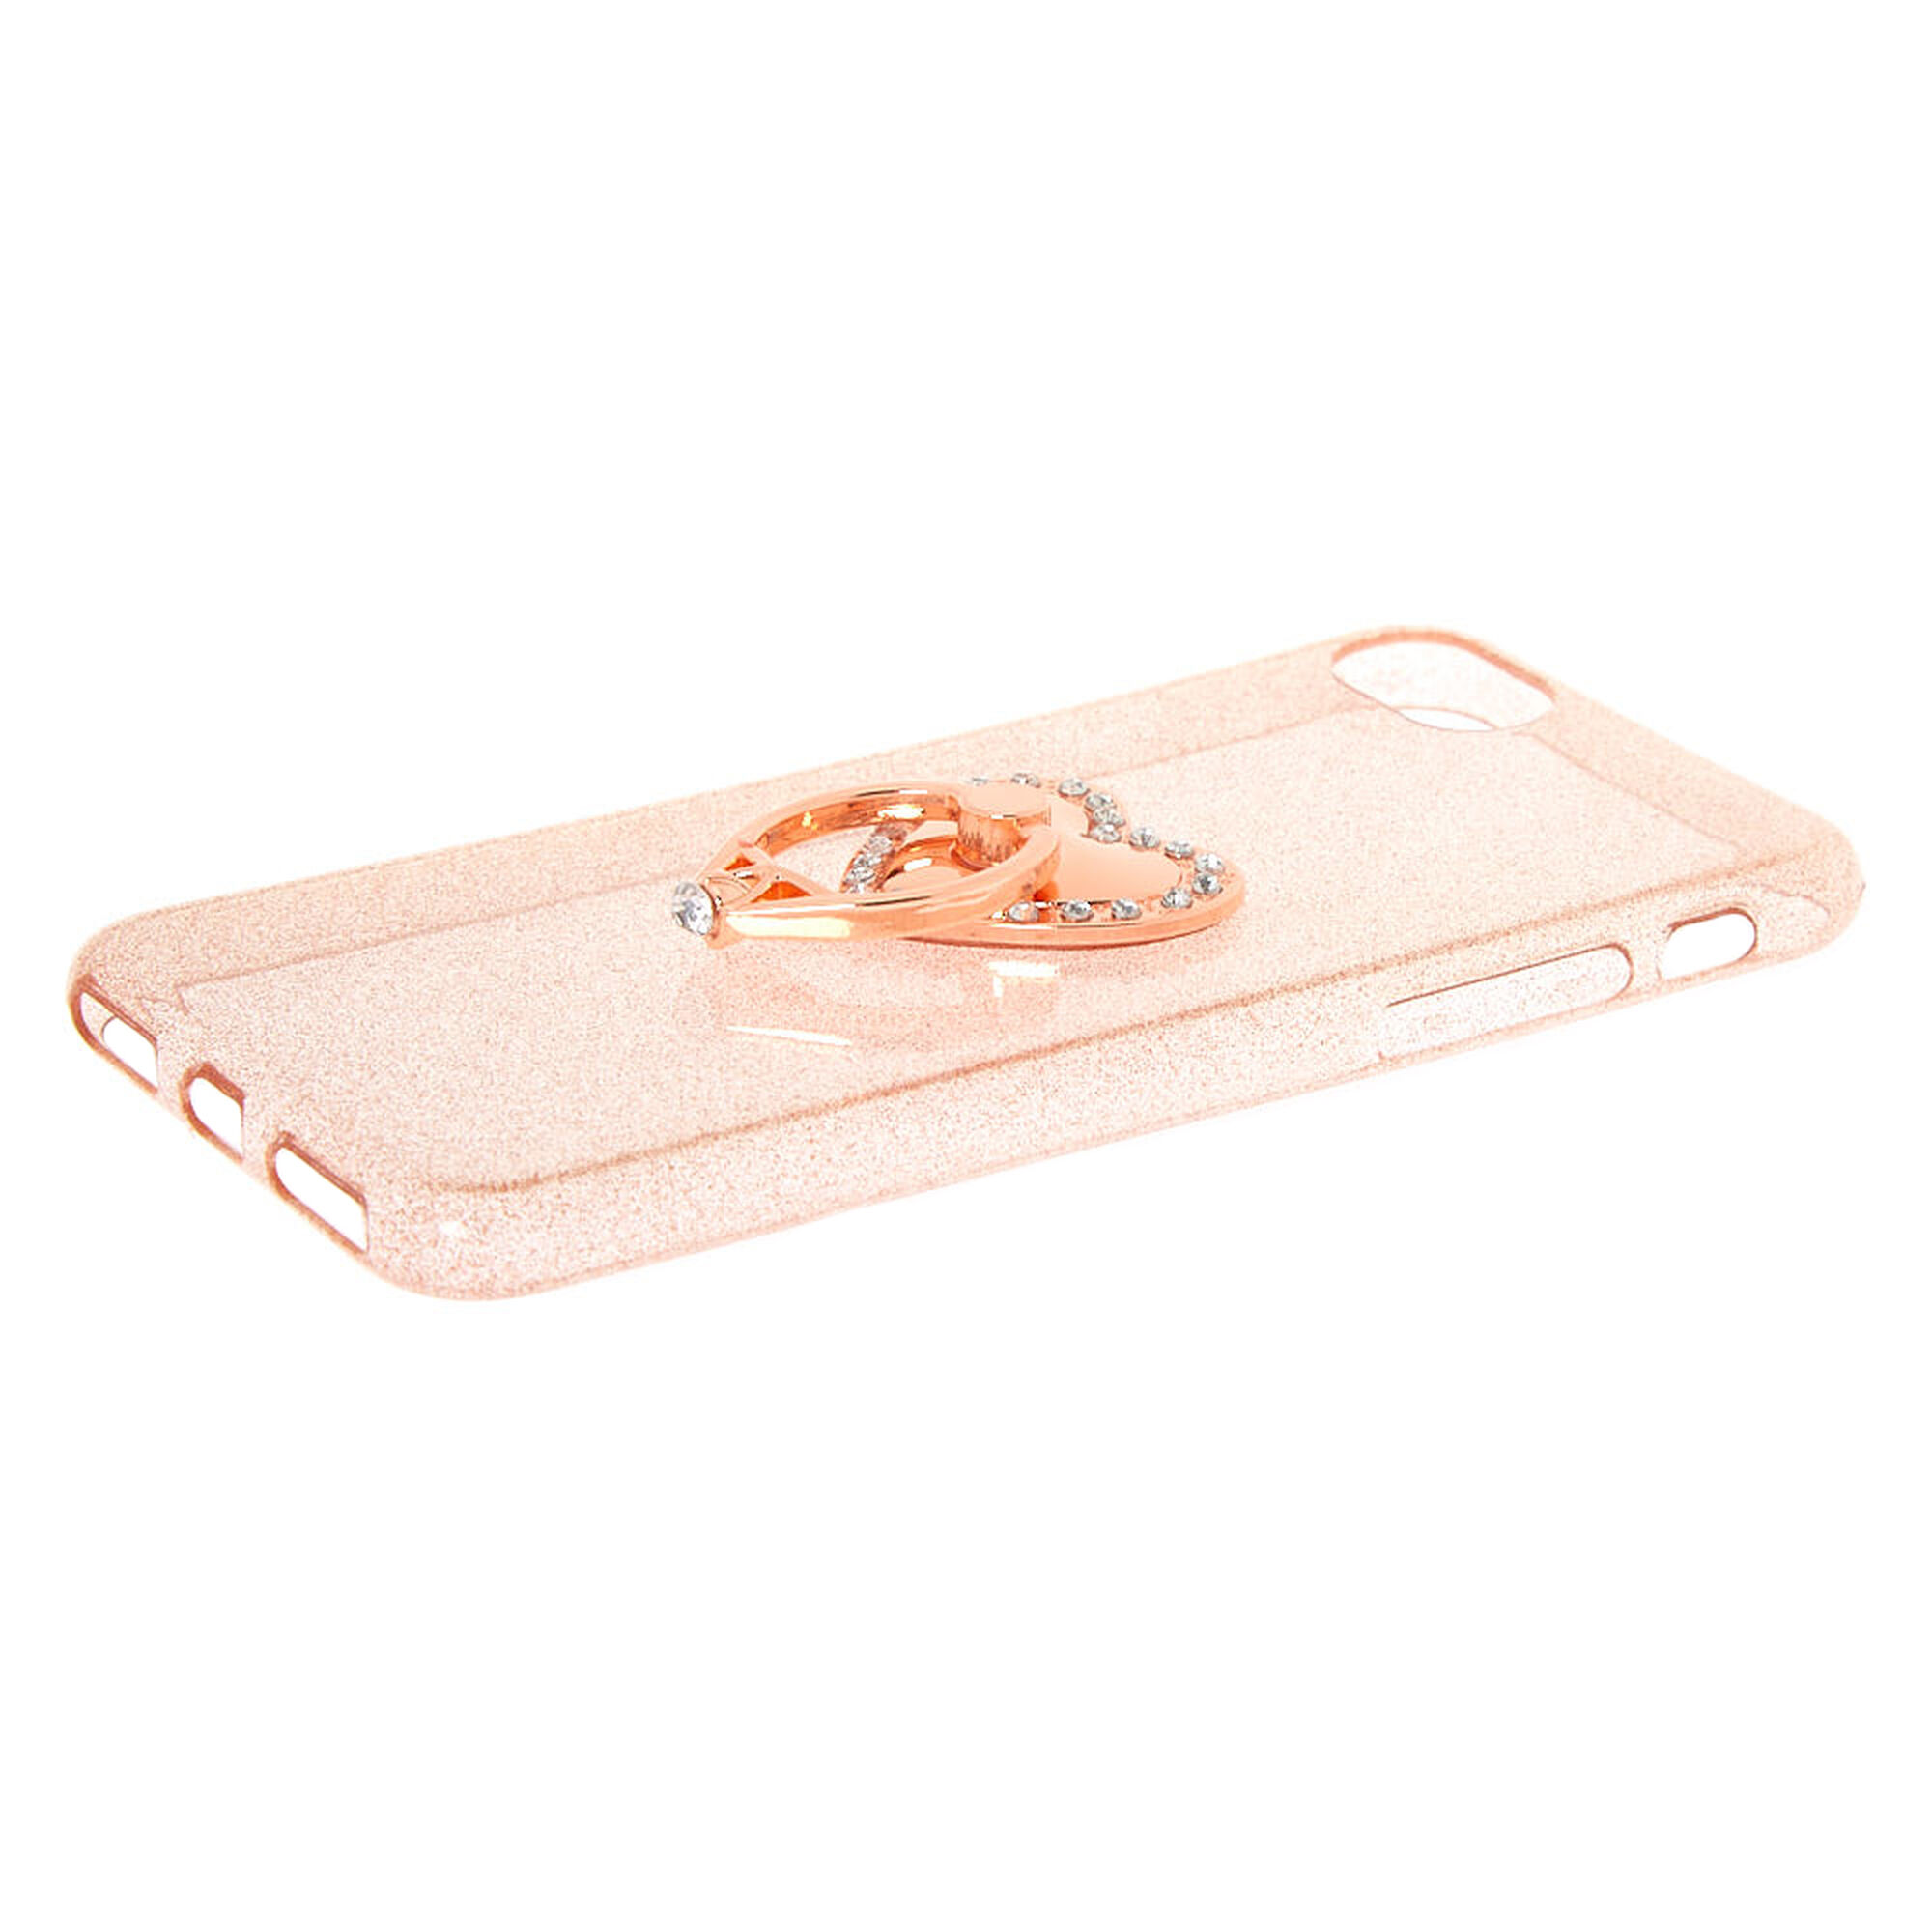 Rose Gold Heart Ring Stand Phone Case Fits Iphone 6 7 8 Se